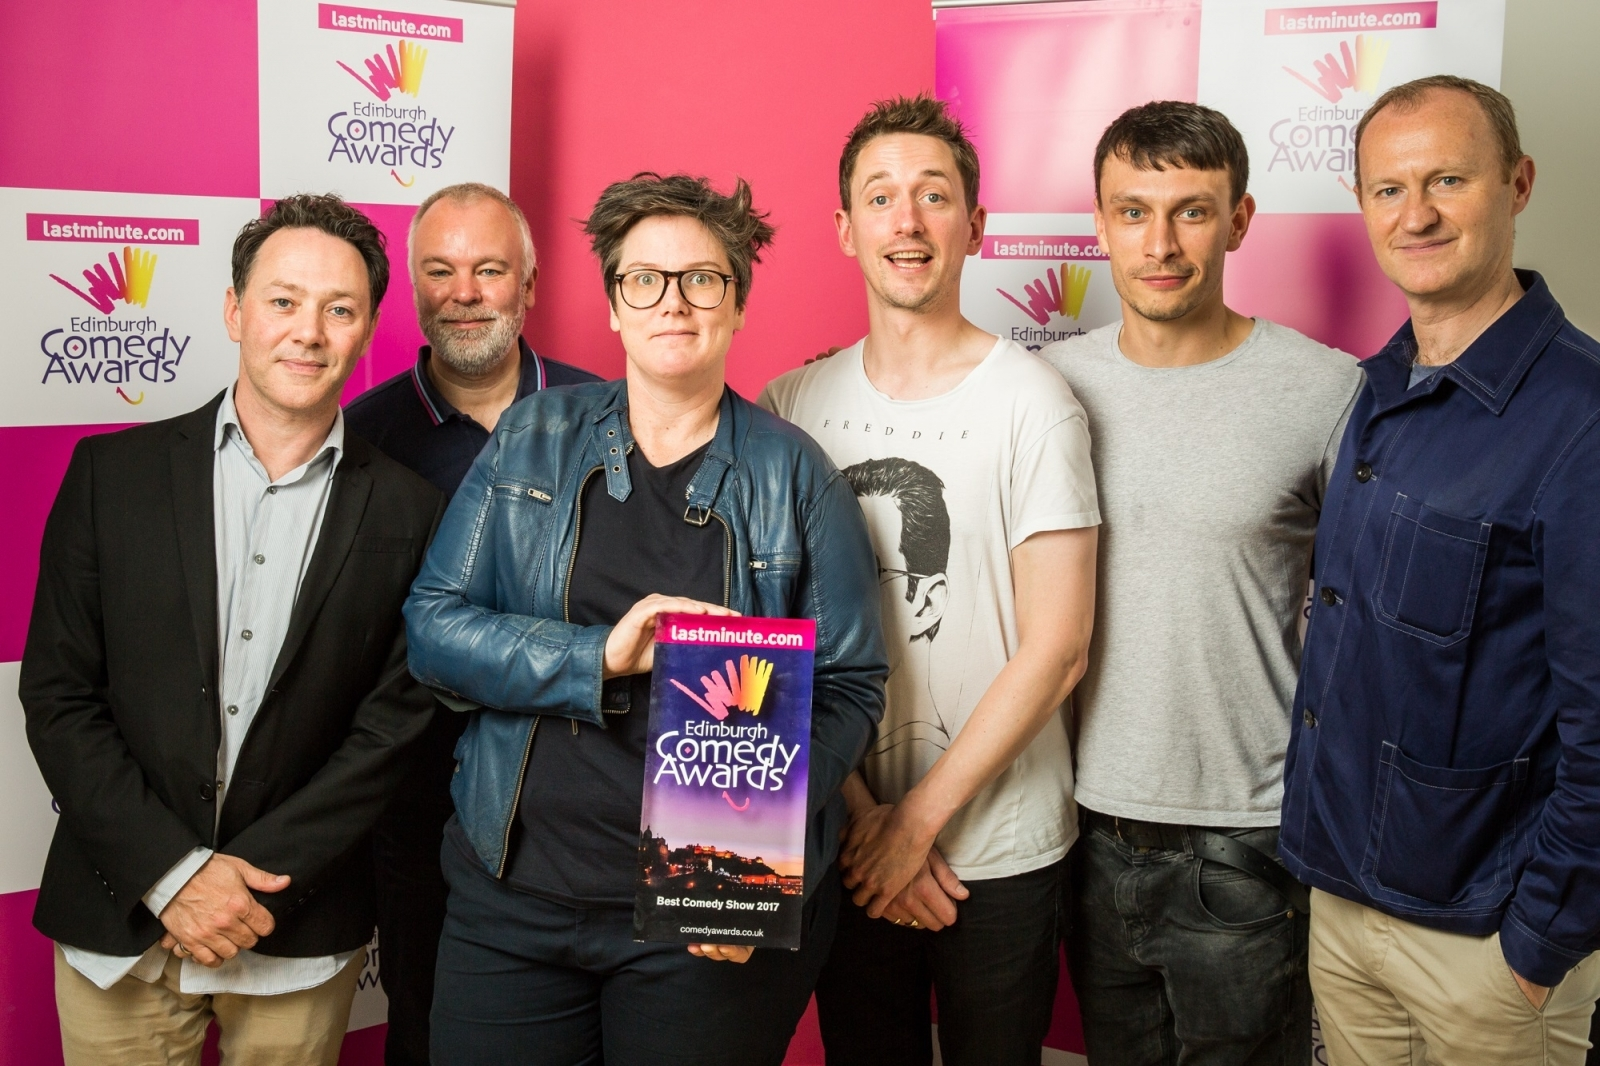 Edinburgh Comedy Award winners